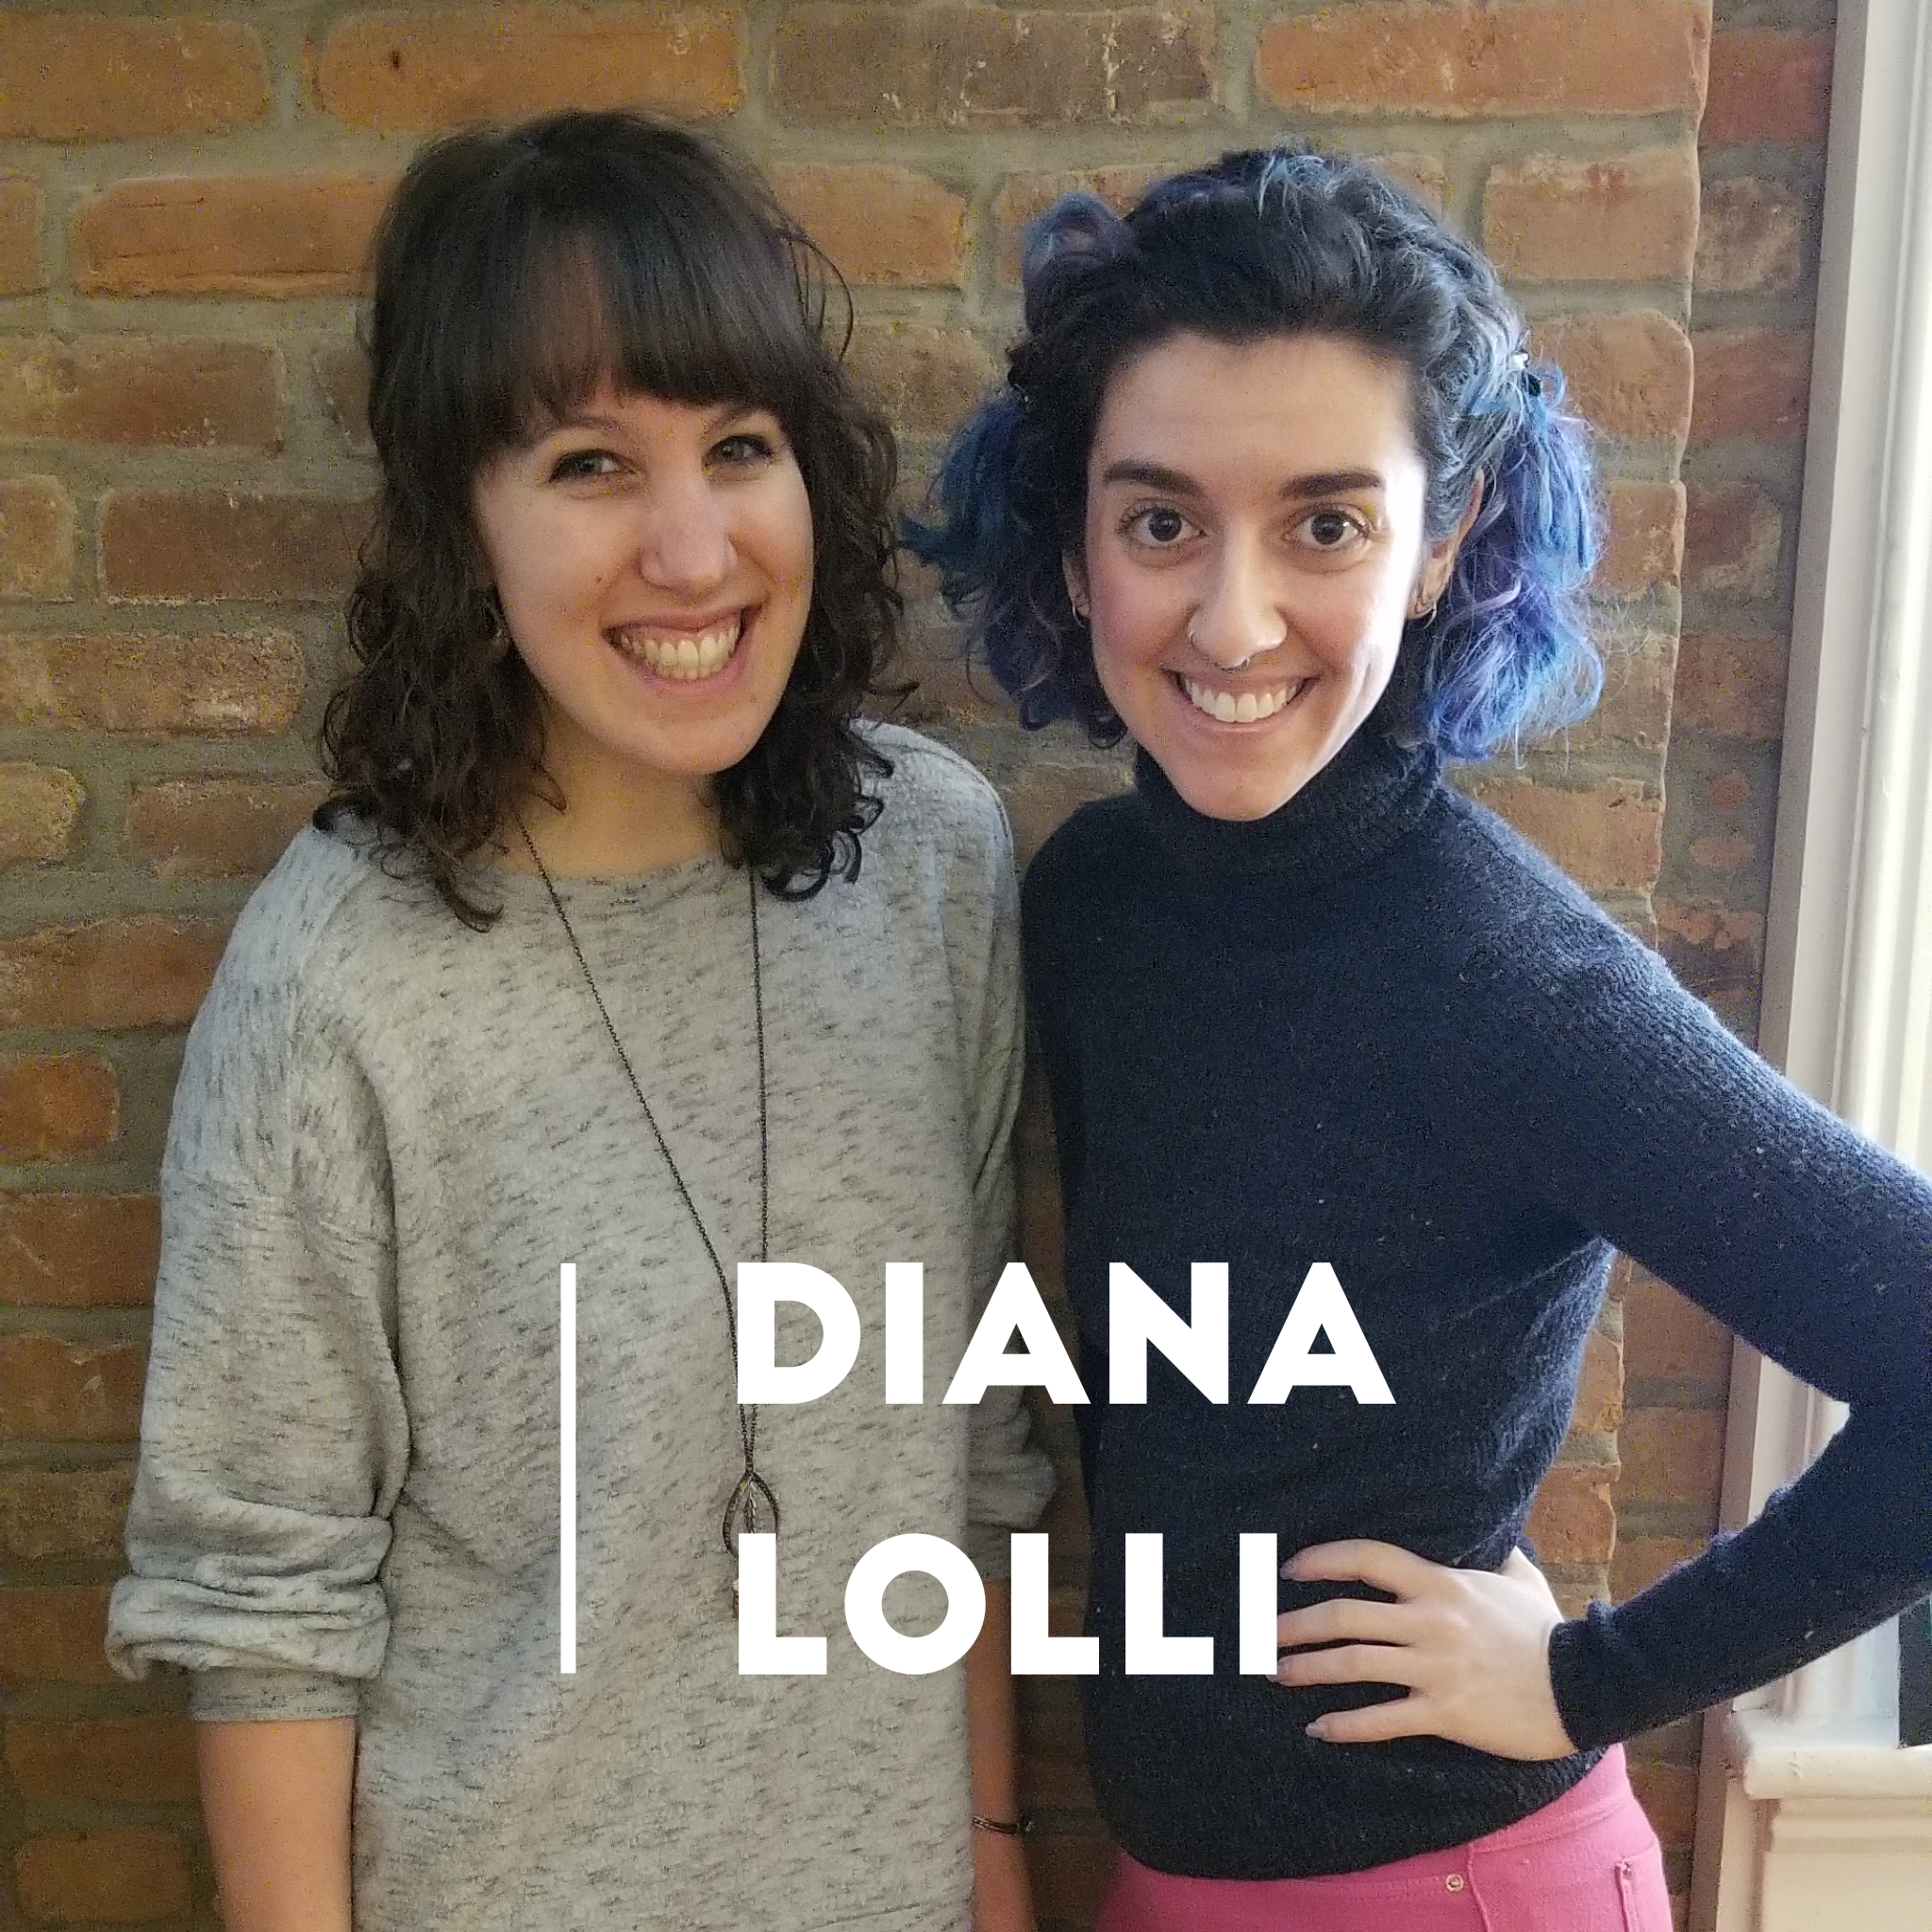 Lorrin with Diana Lolli, creator of tangibles